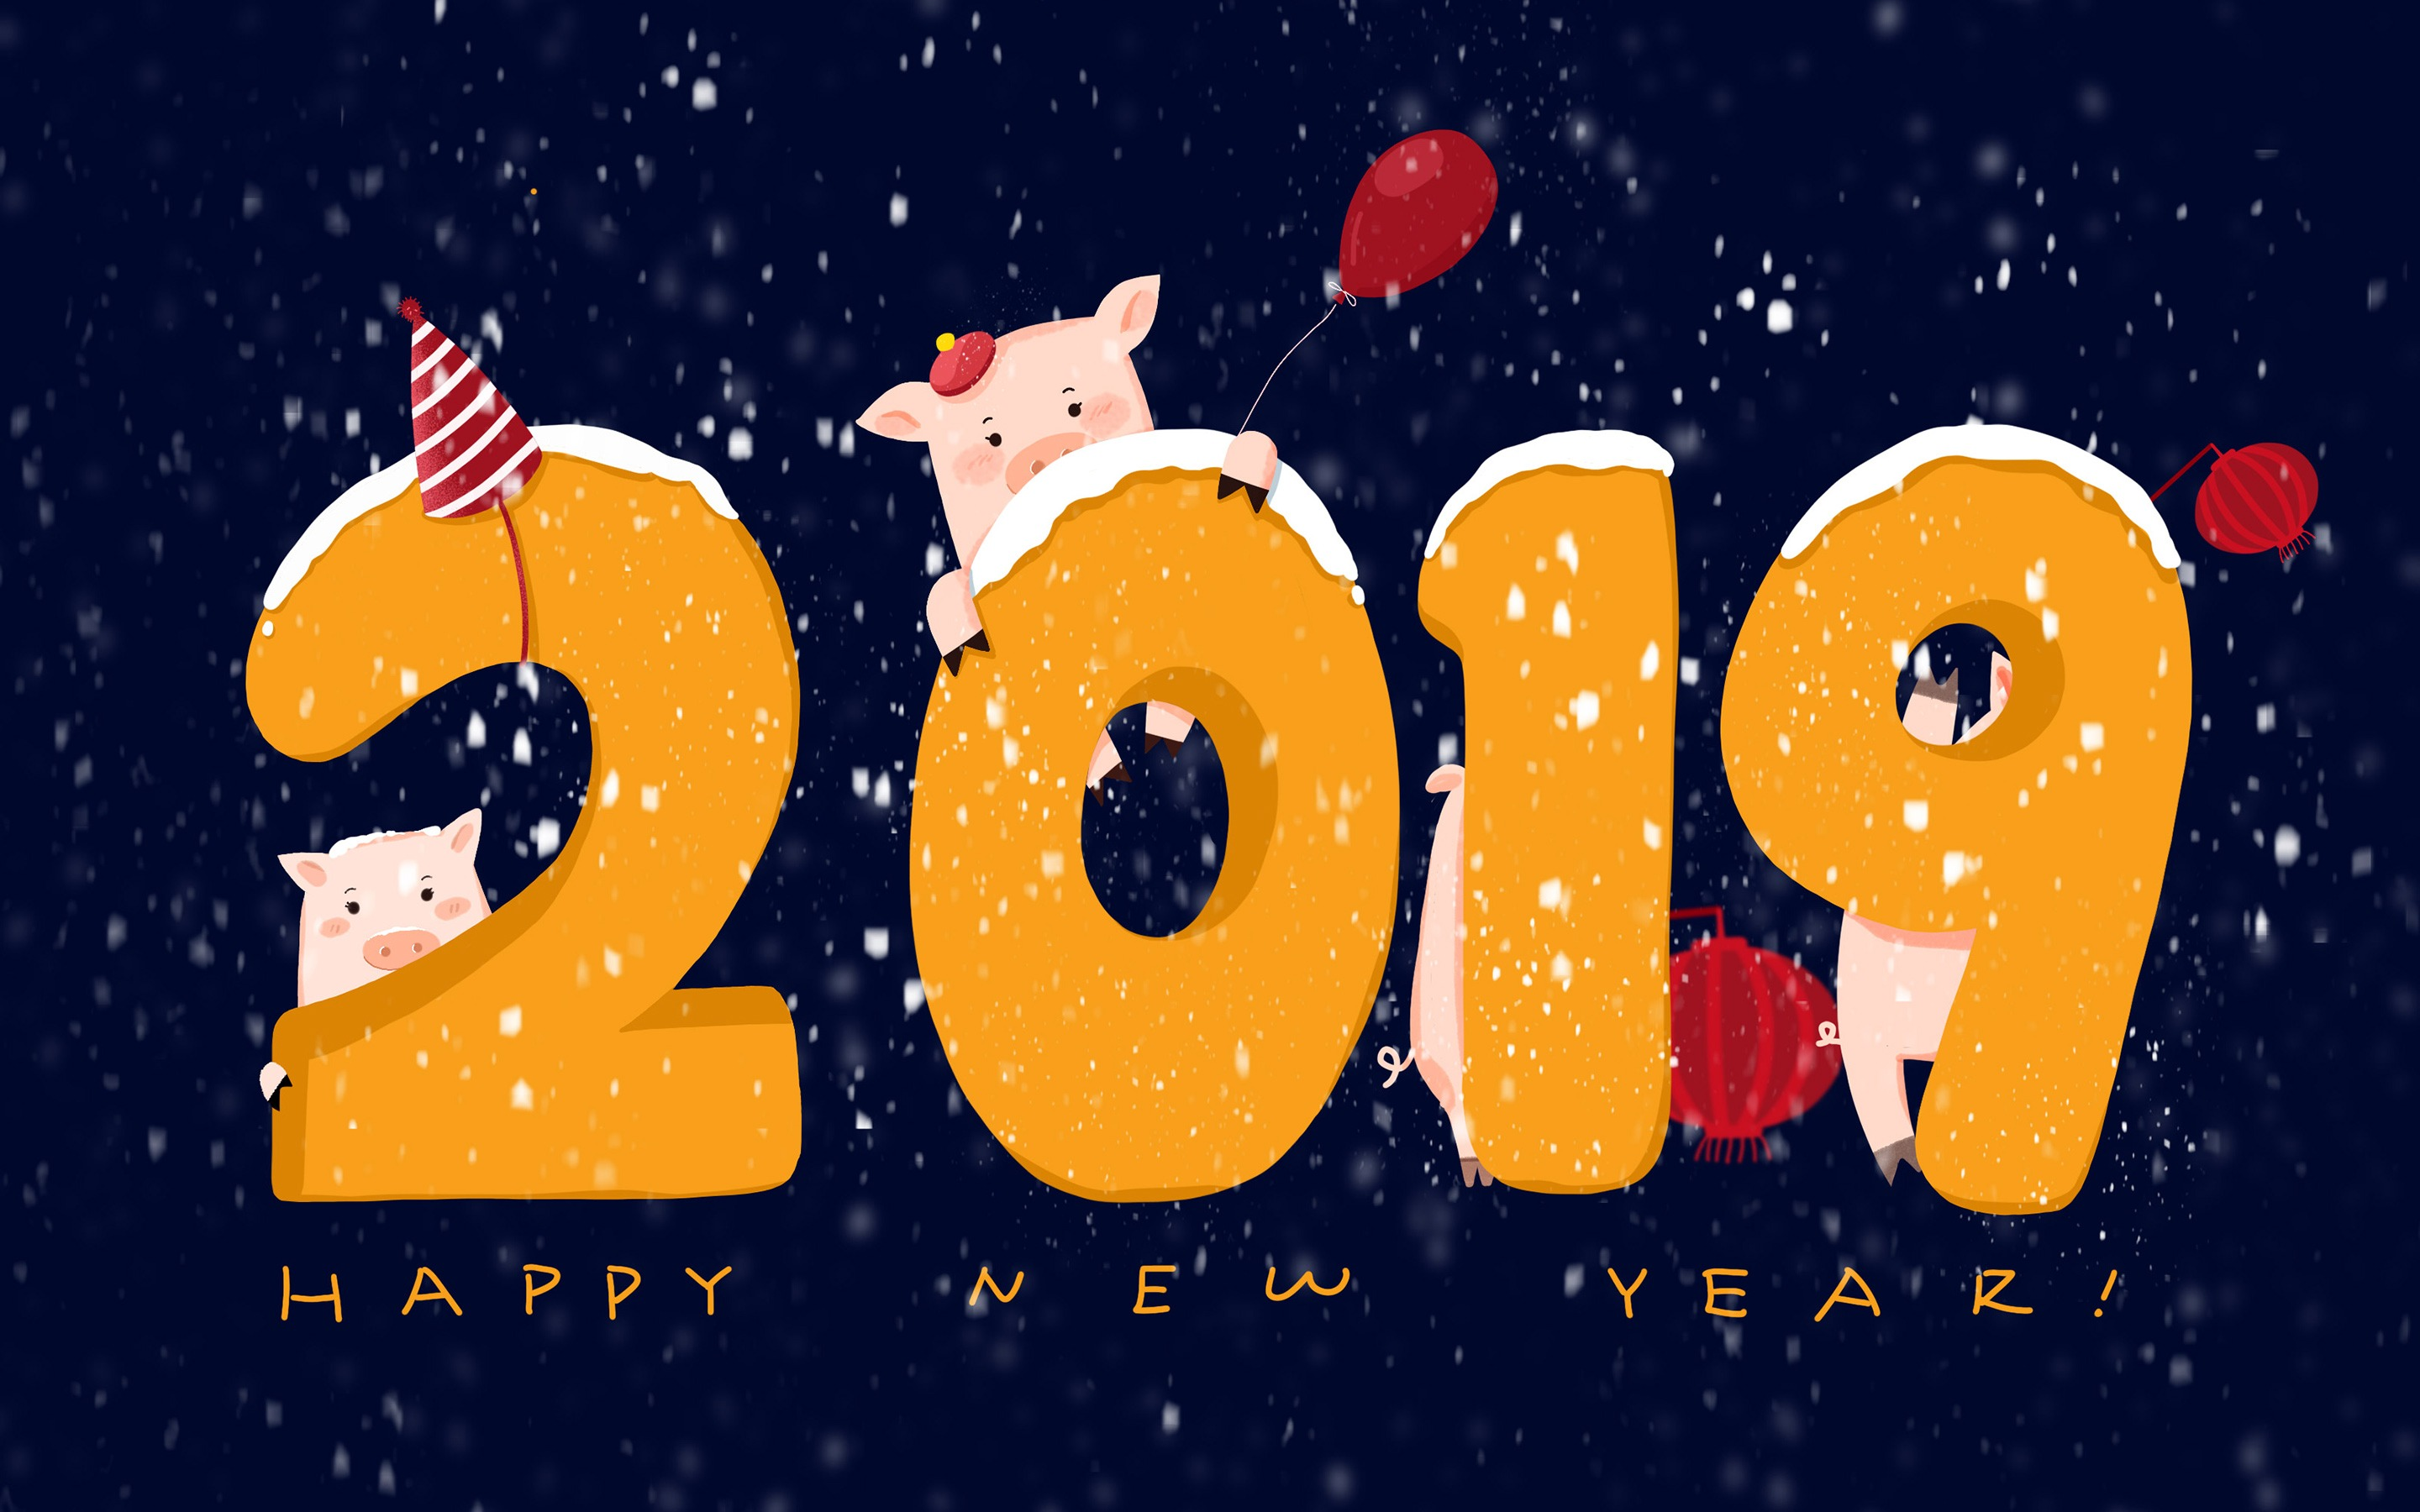 Happy New Year 2019 Winter Cute Pig Wallpaper 2880x1800